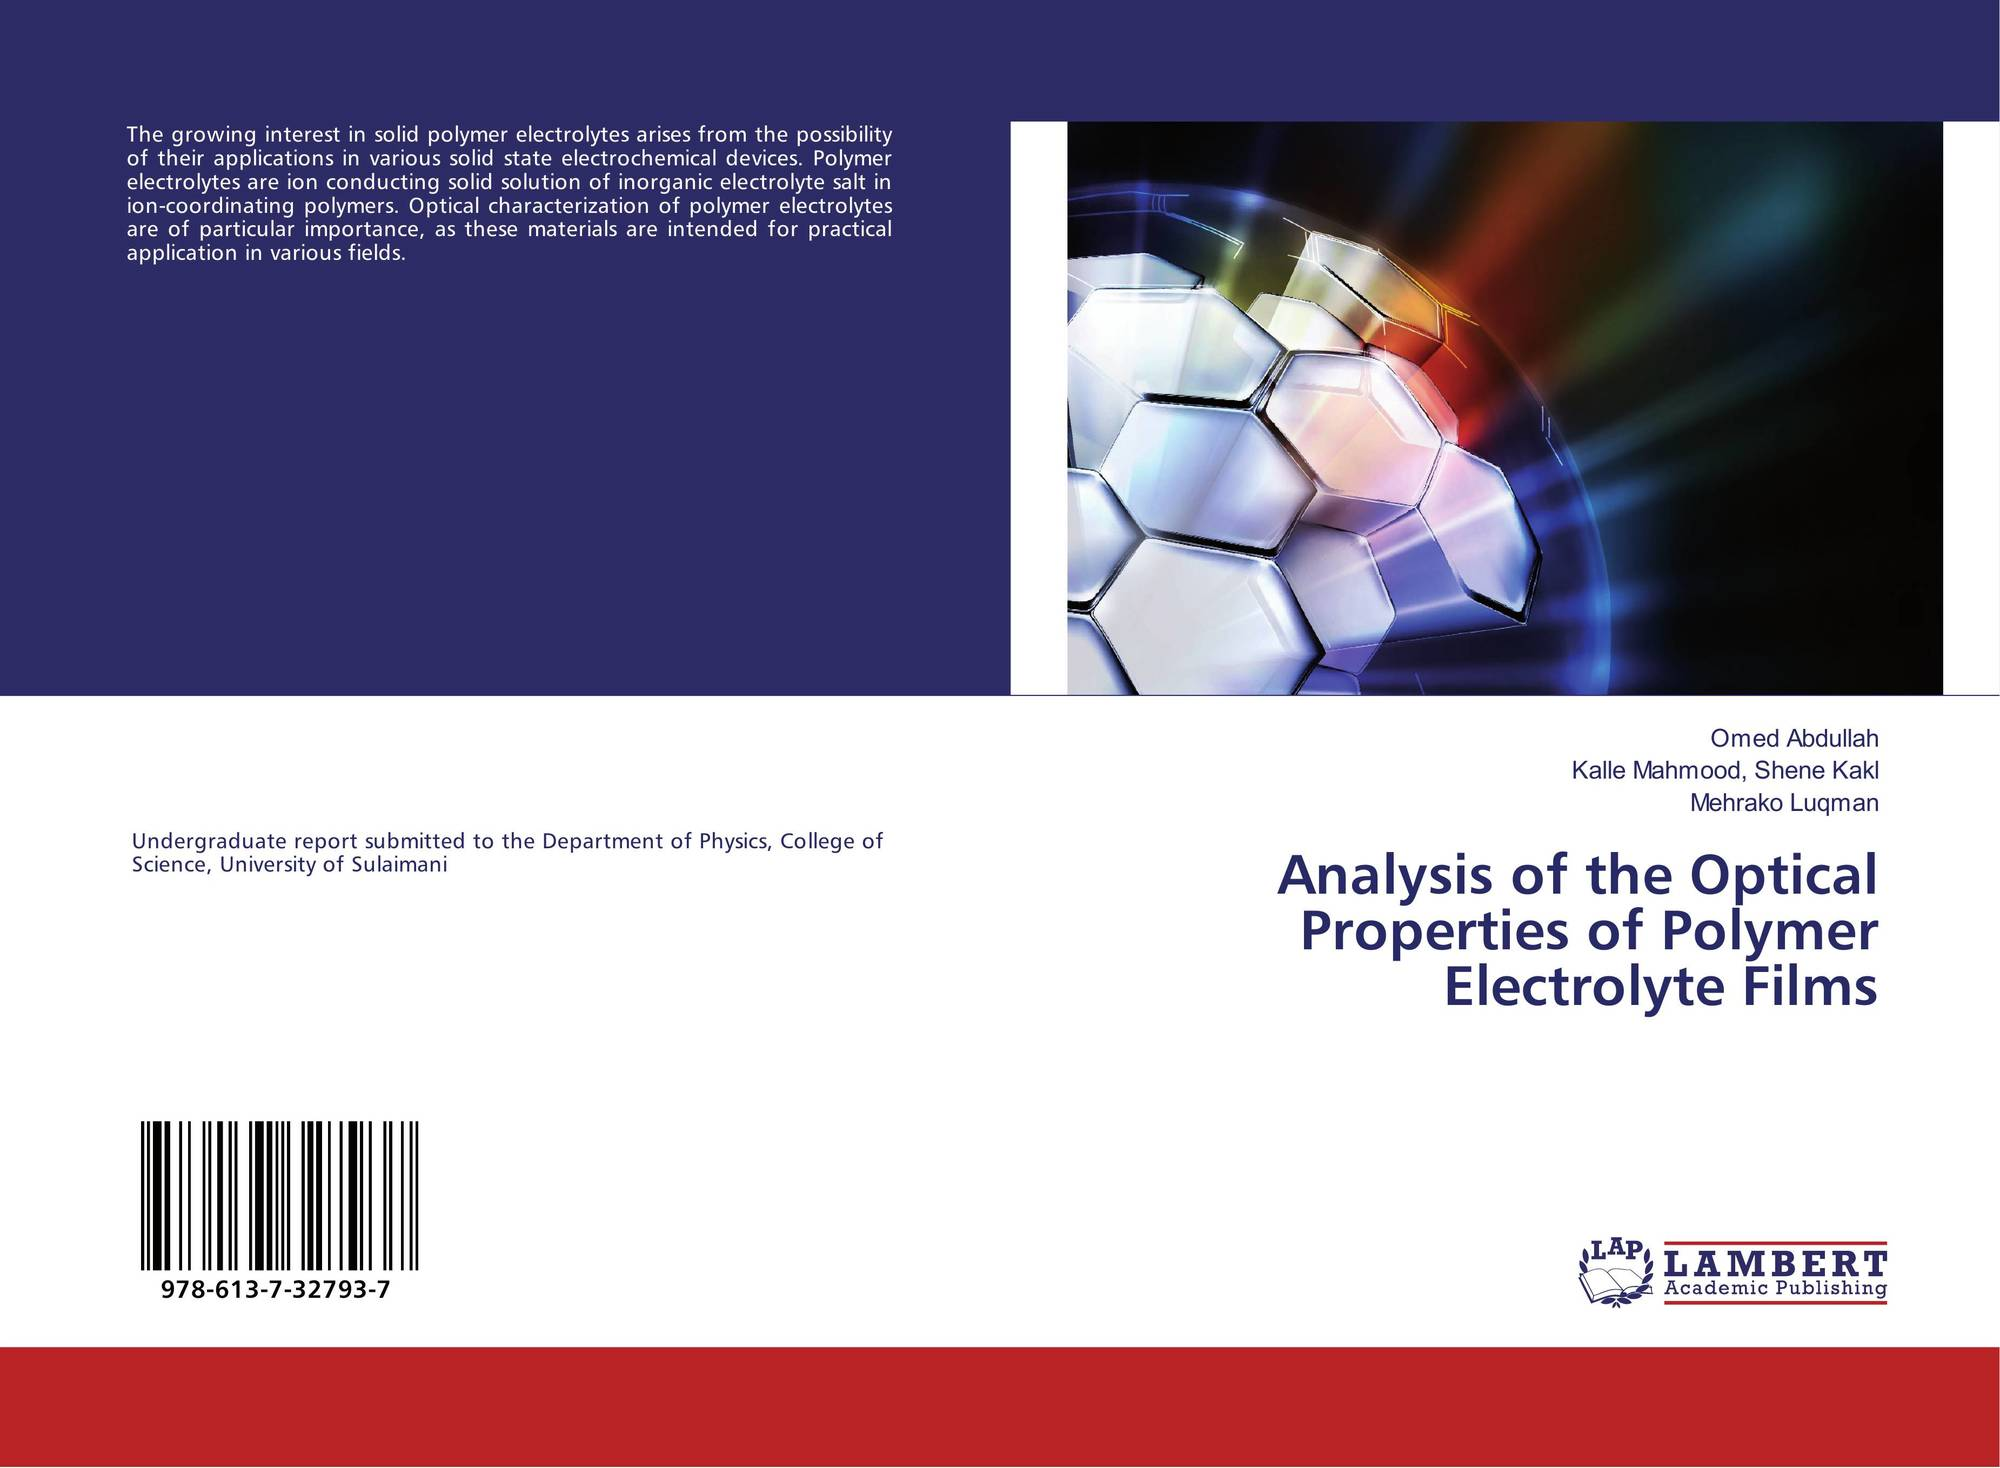 Analysis of the Optical Properties of Polymer Electrolyte Films, 978